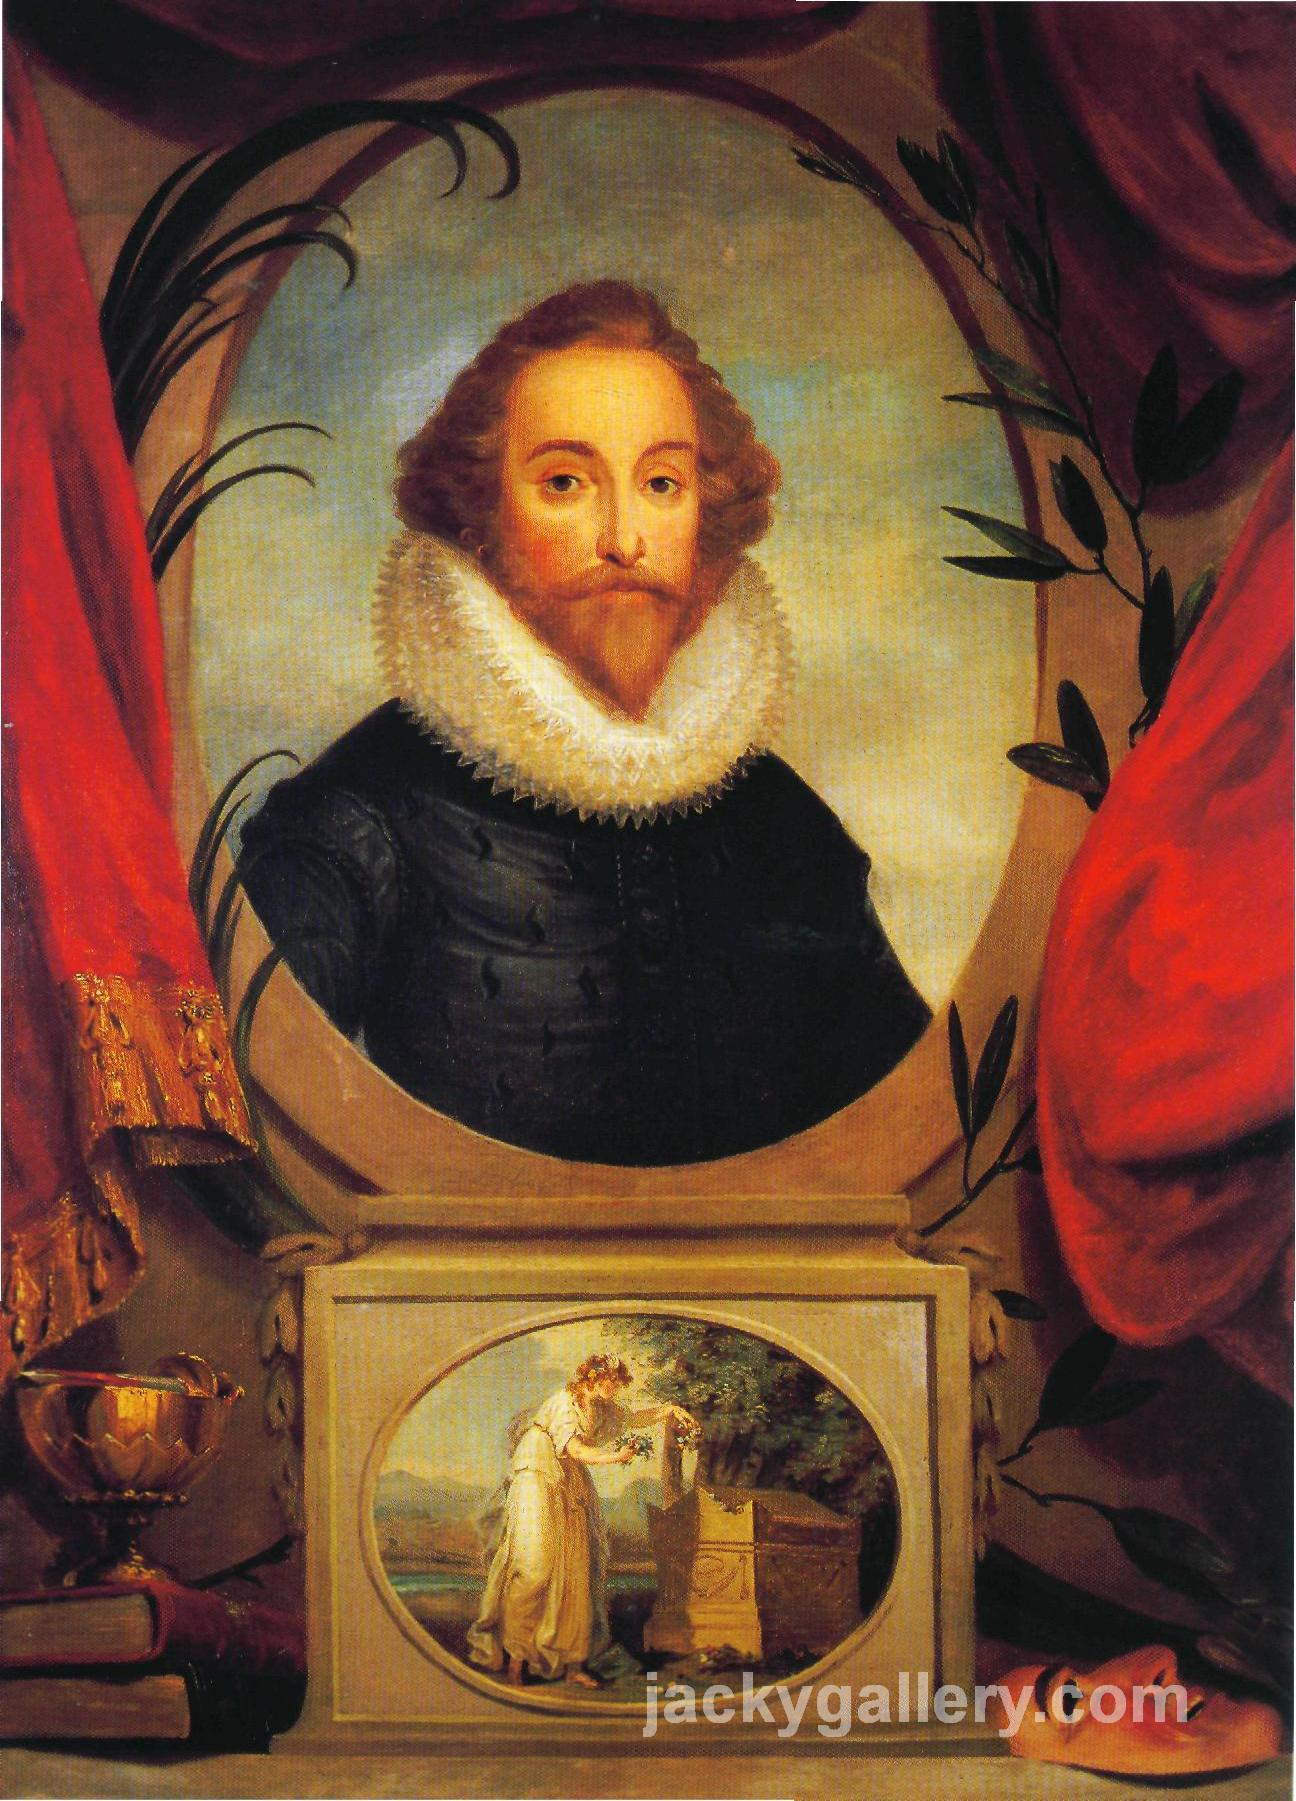 Ideal portrait of Shakespeare, Angelica Kauffman painting